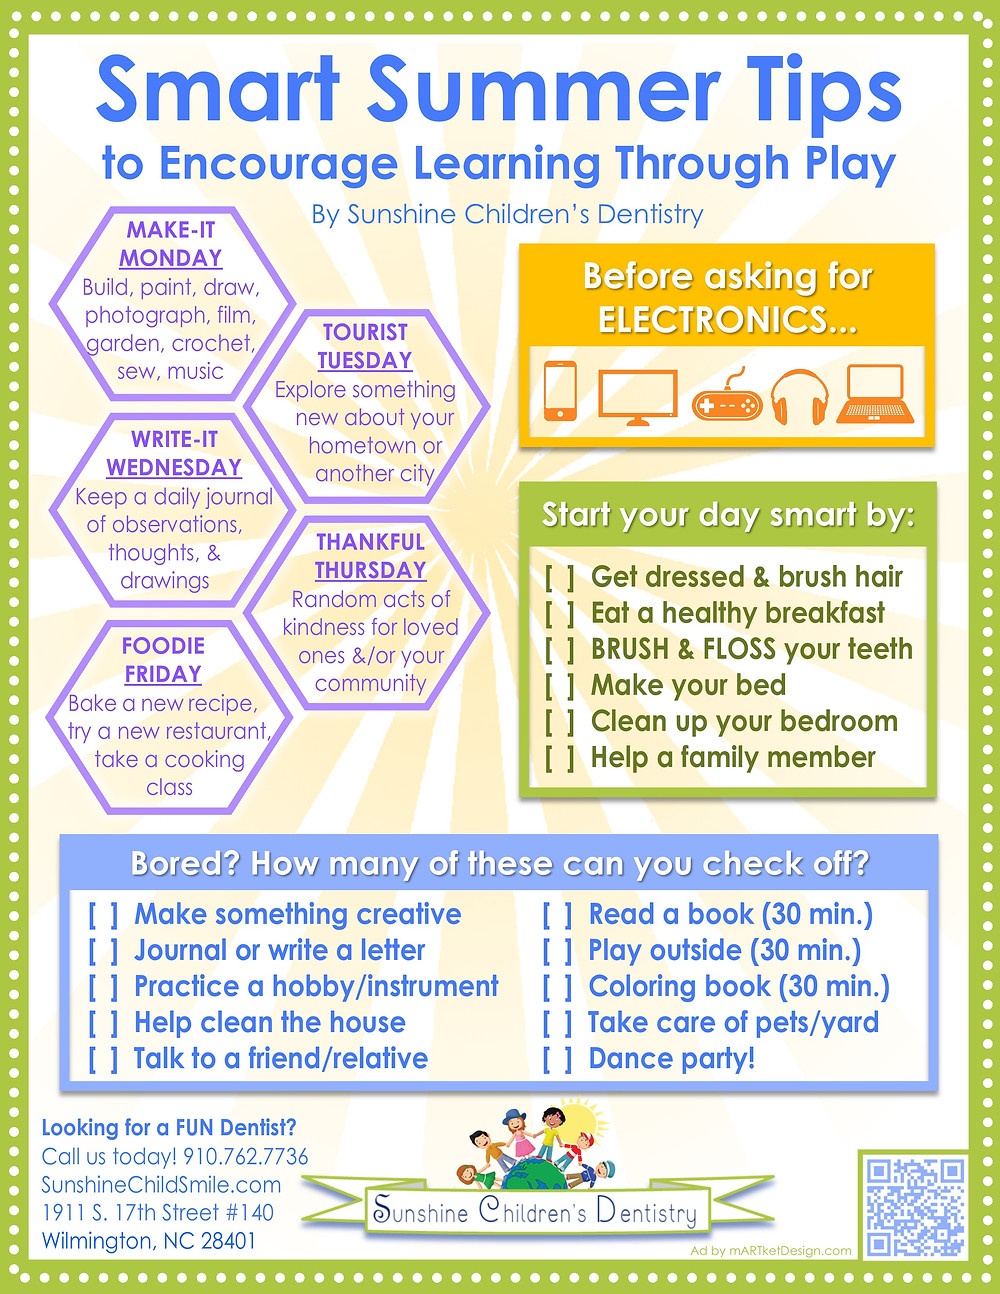 Smart Summer Tips to Encourage Learning Through Play